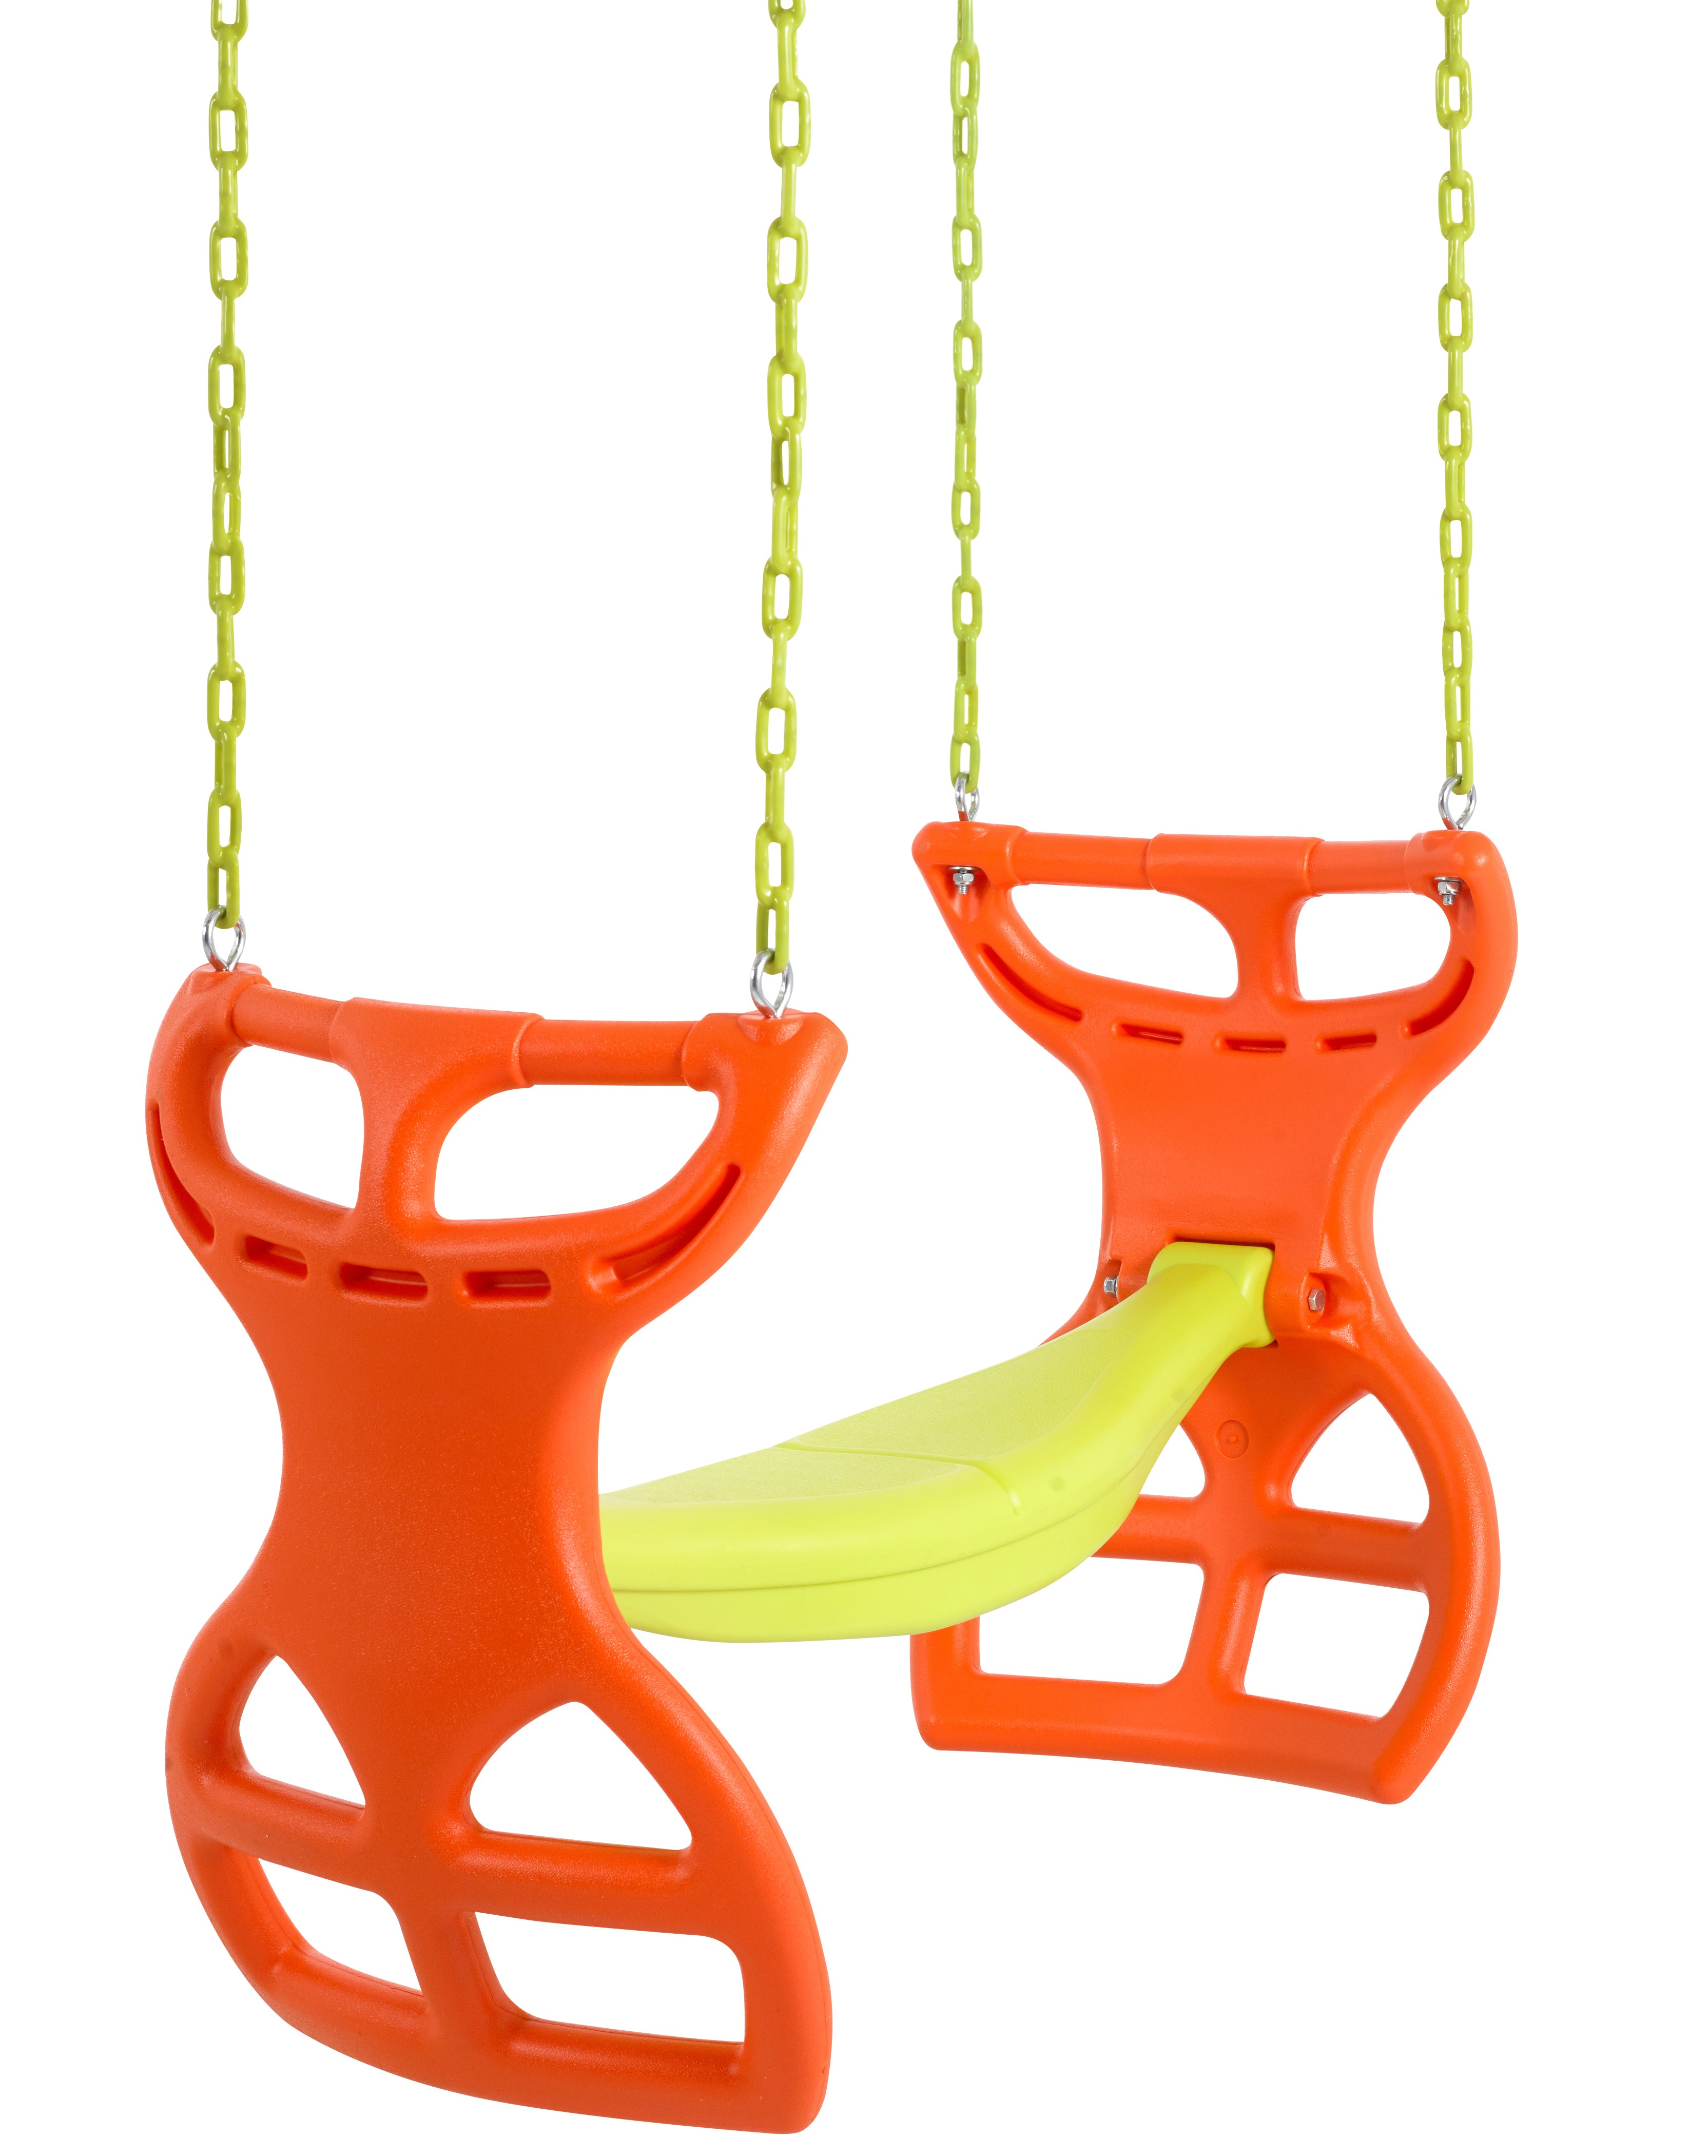 Swingan - Glider Swing Seat - Two Kids Seater | Playground Sets & Accessories for Children - Orange & Yellow